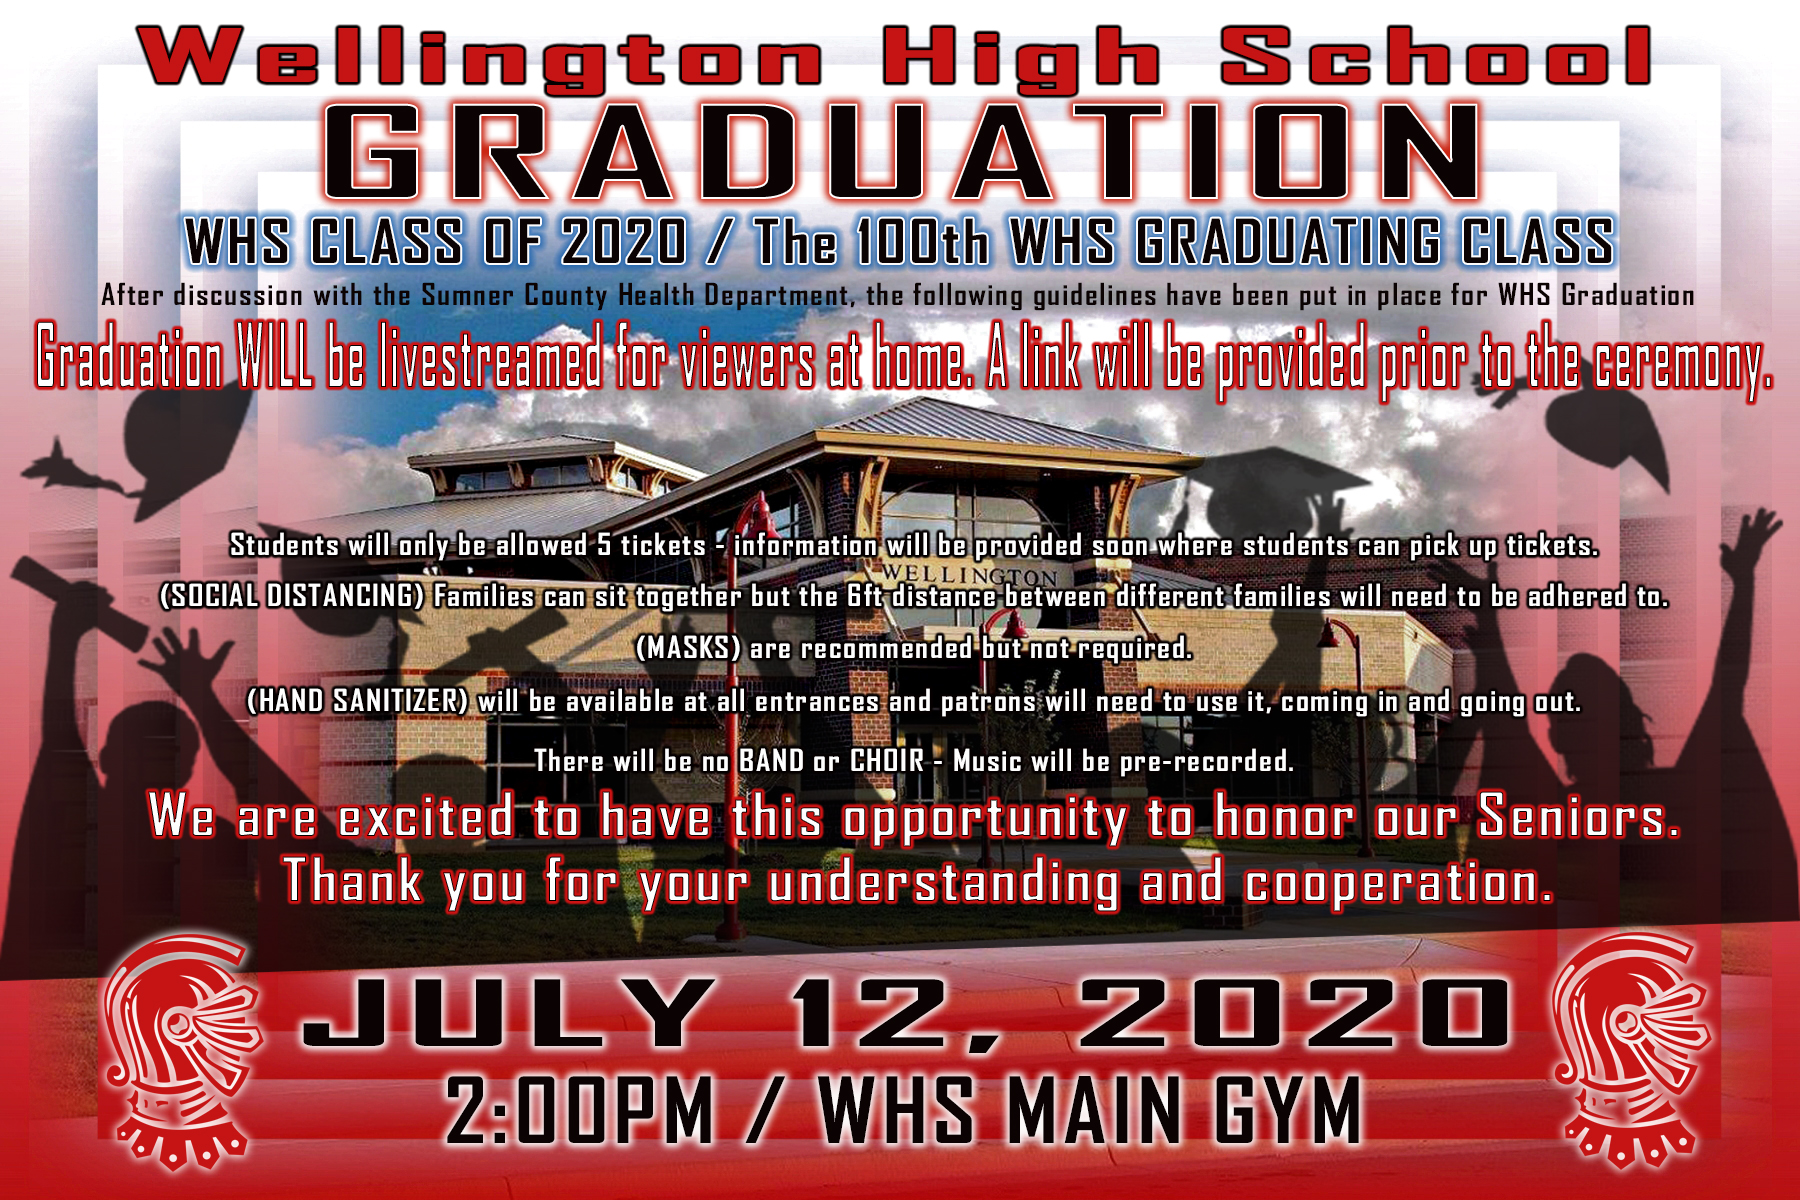 WHS Class of 2020 Graduation Information